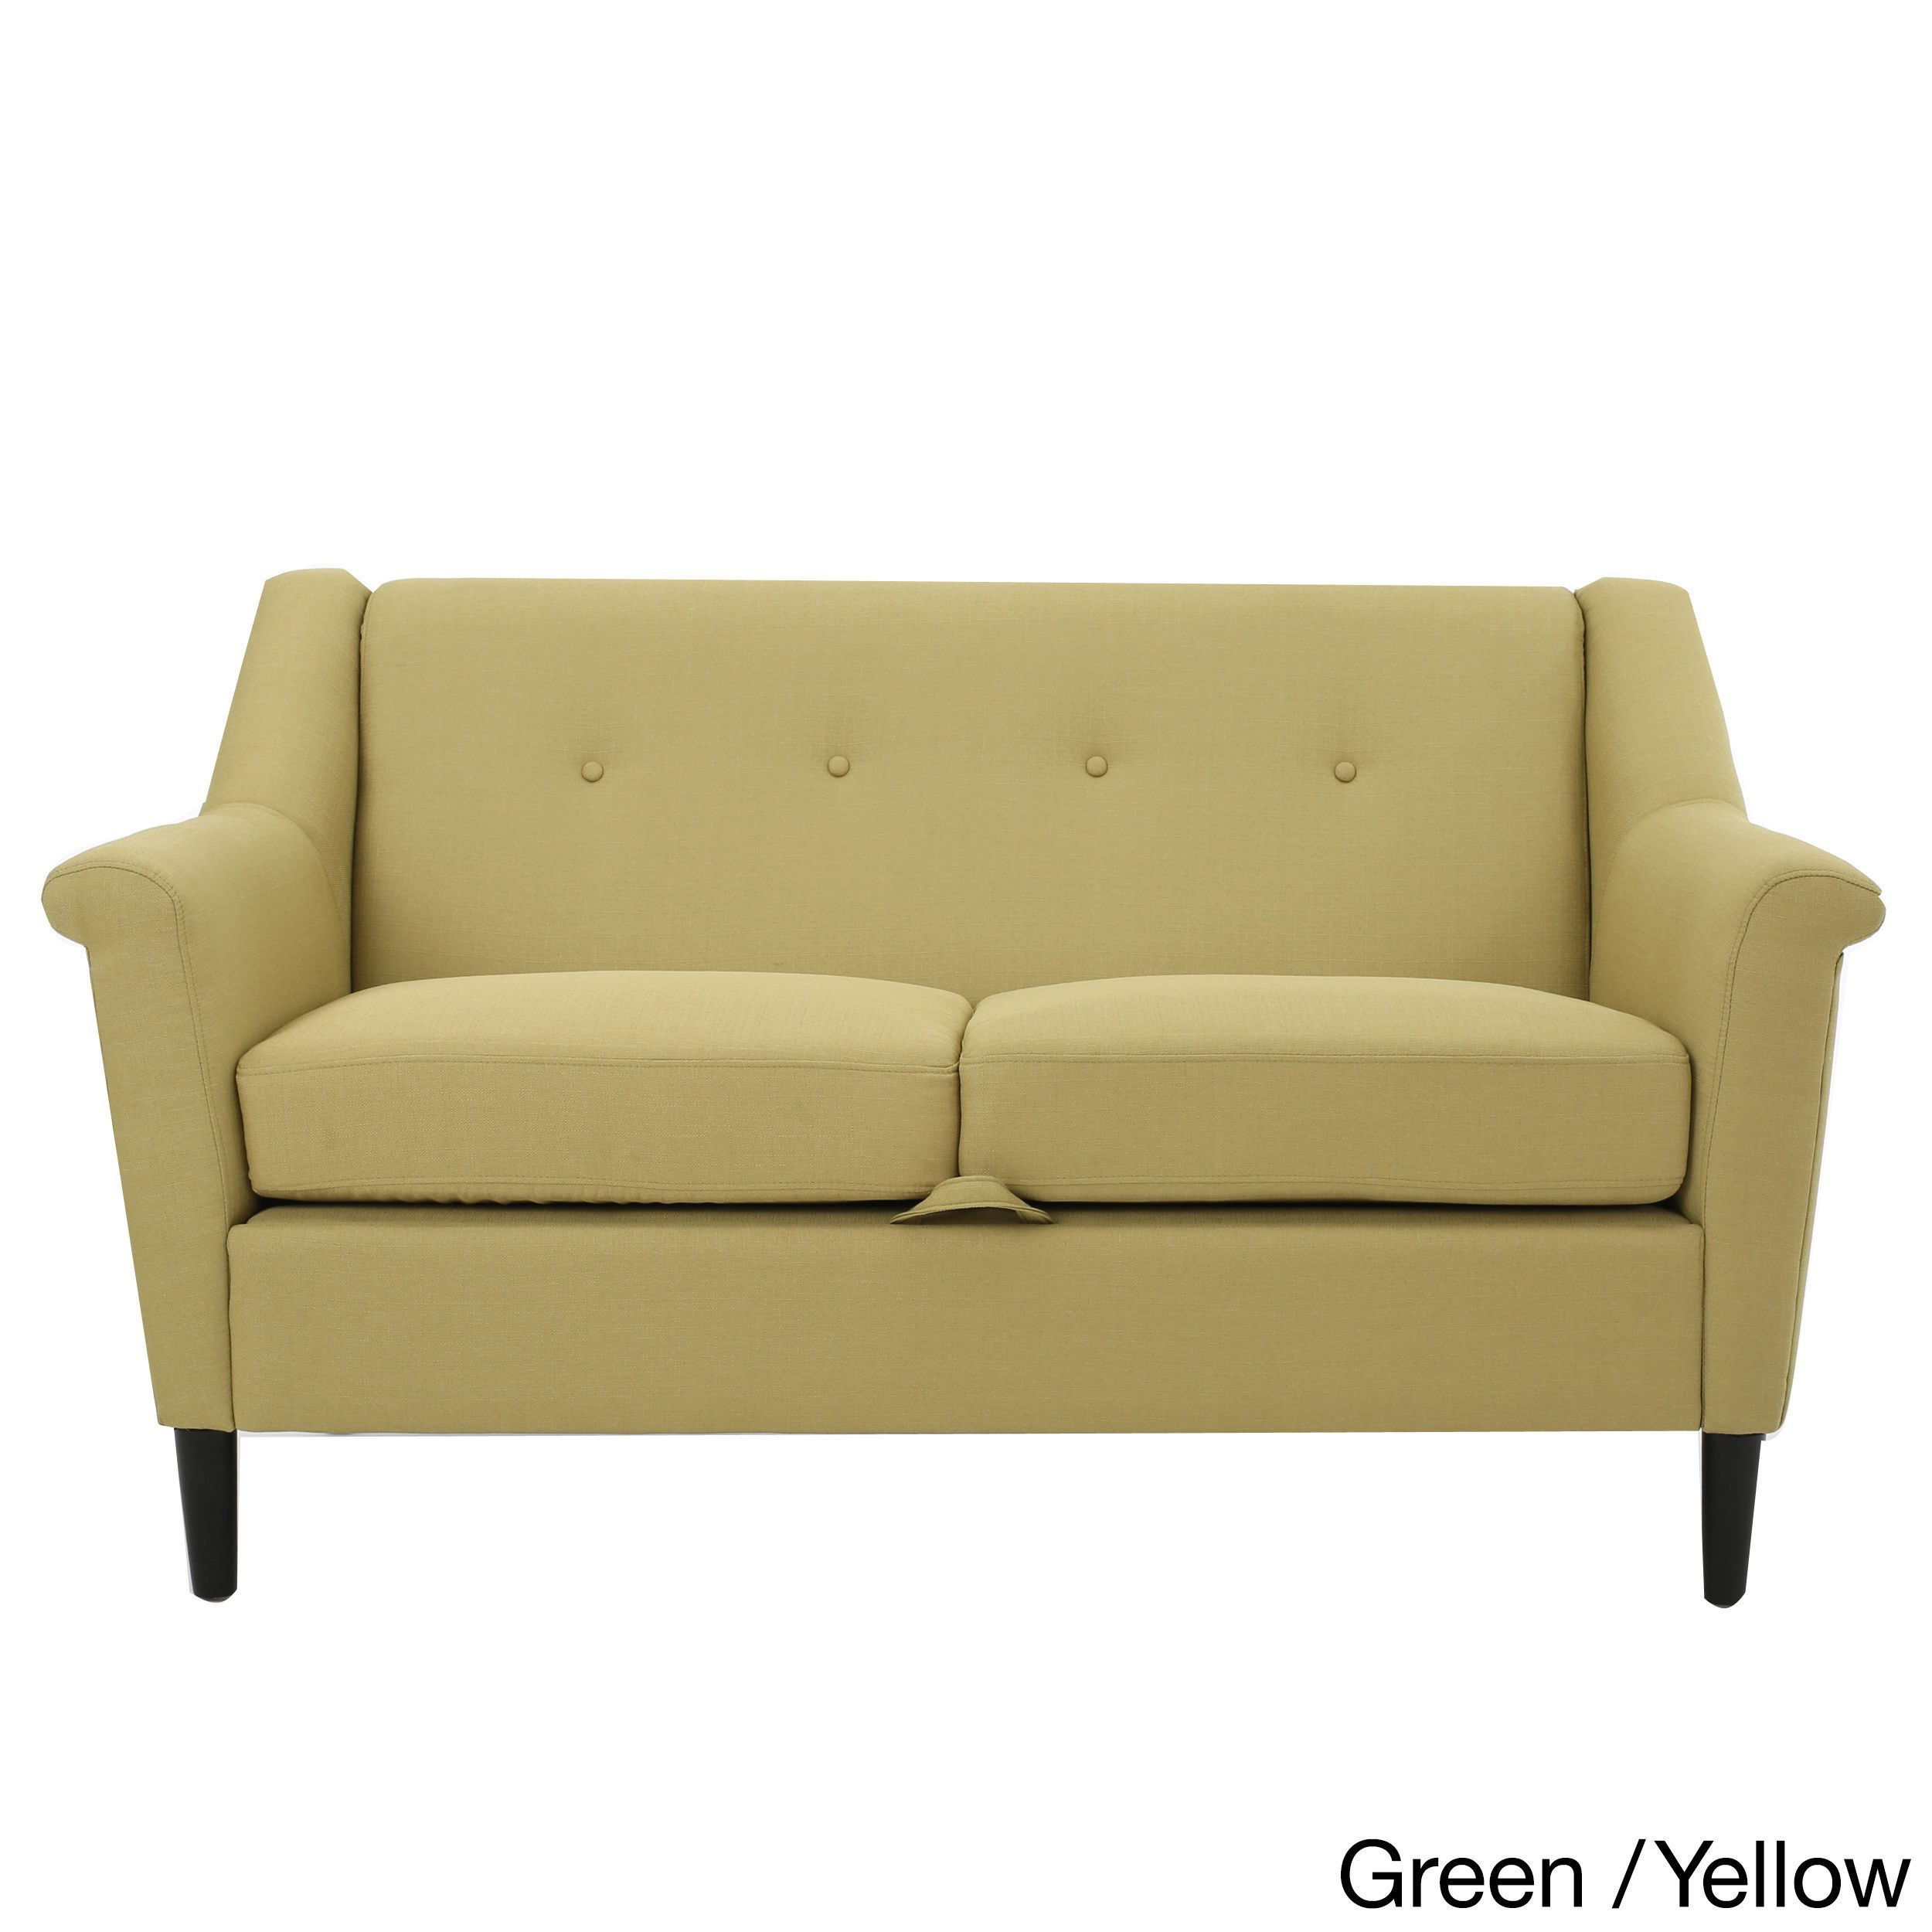 Mullin Two-Seat Fabric Sofa by Christopher Knight Home (Green/Yellow) (Birch)